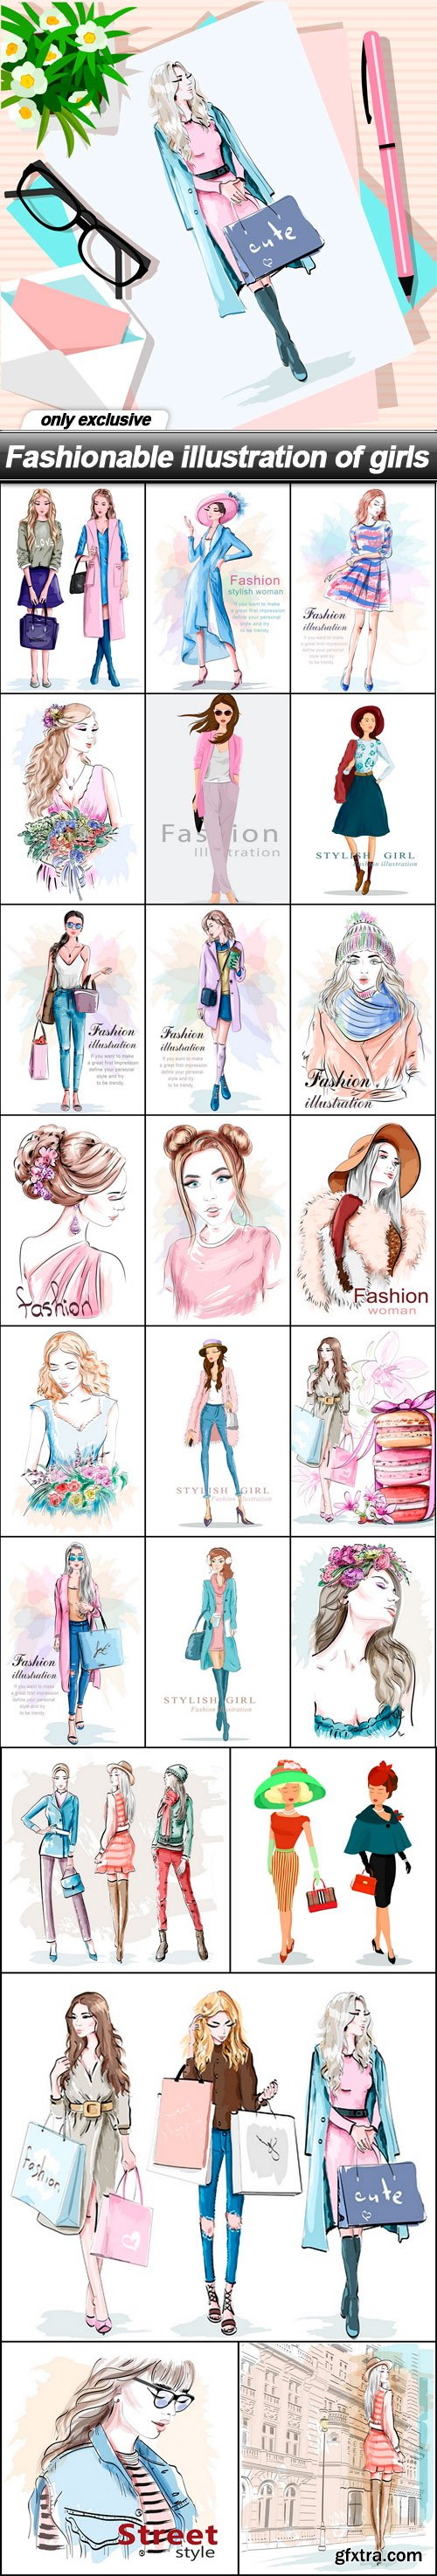 Fashionable illustration of girls - 24 EPS